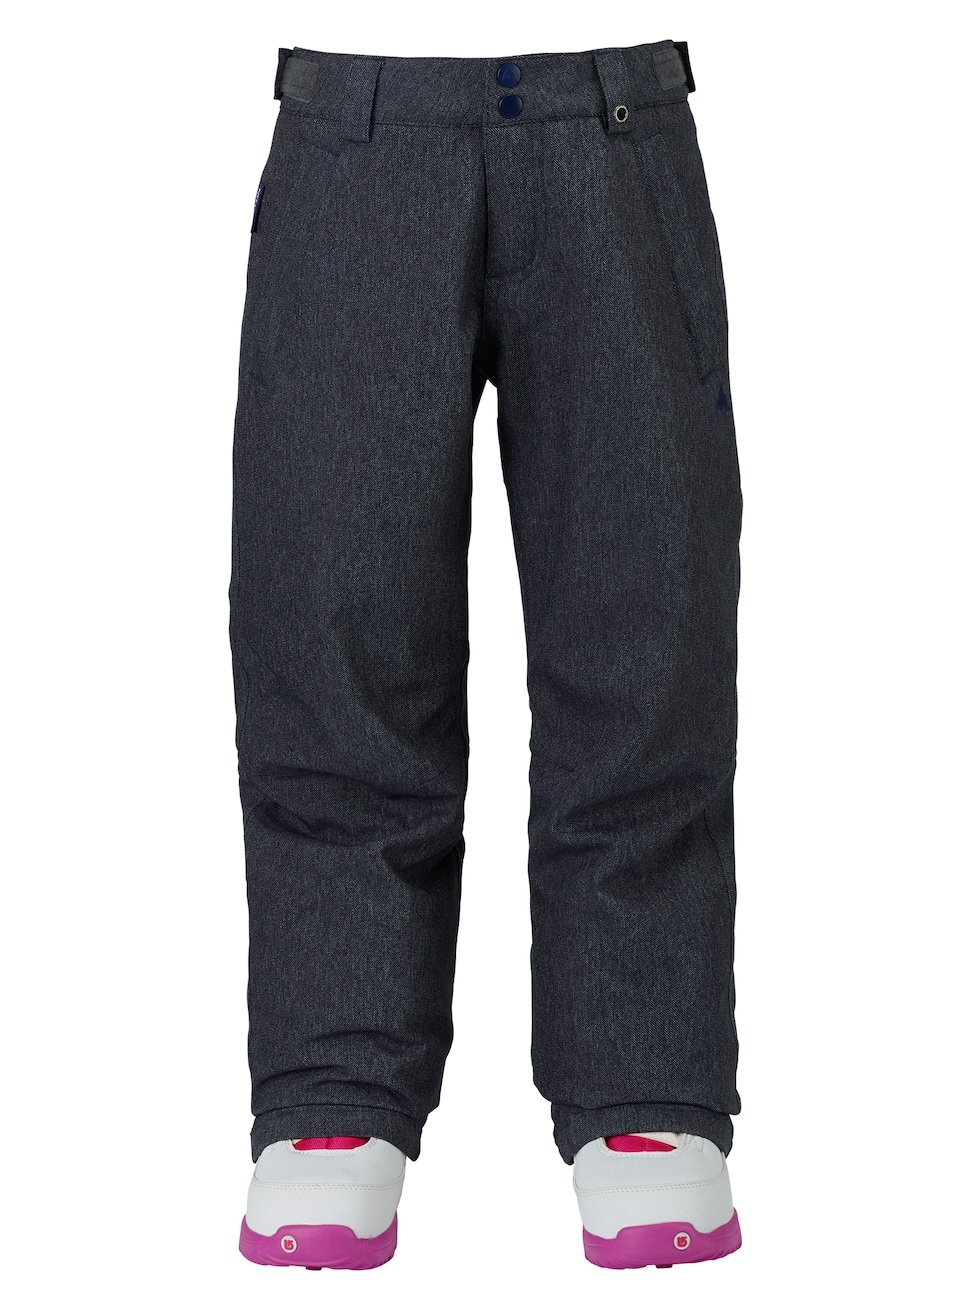 Burton Sweetart Pants 115841-19